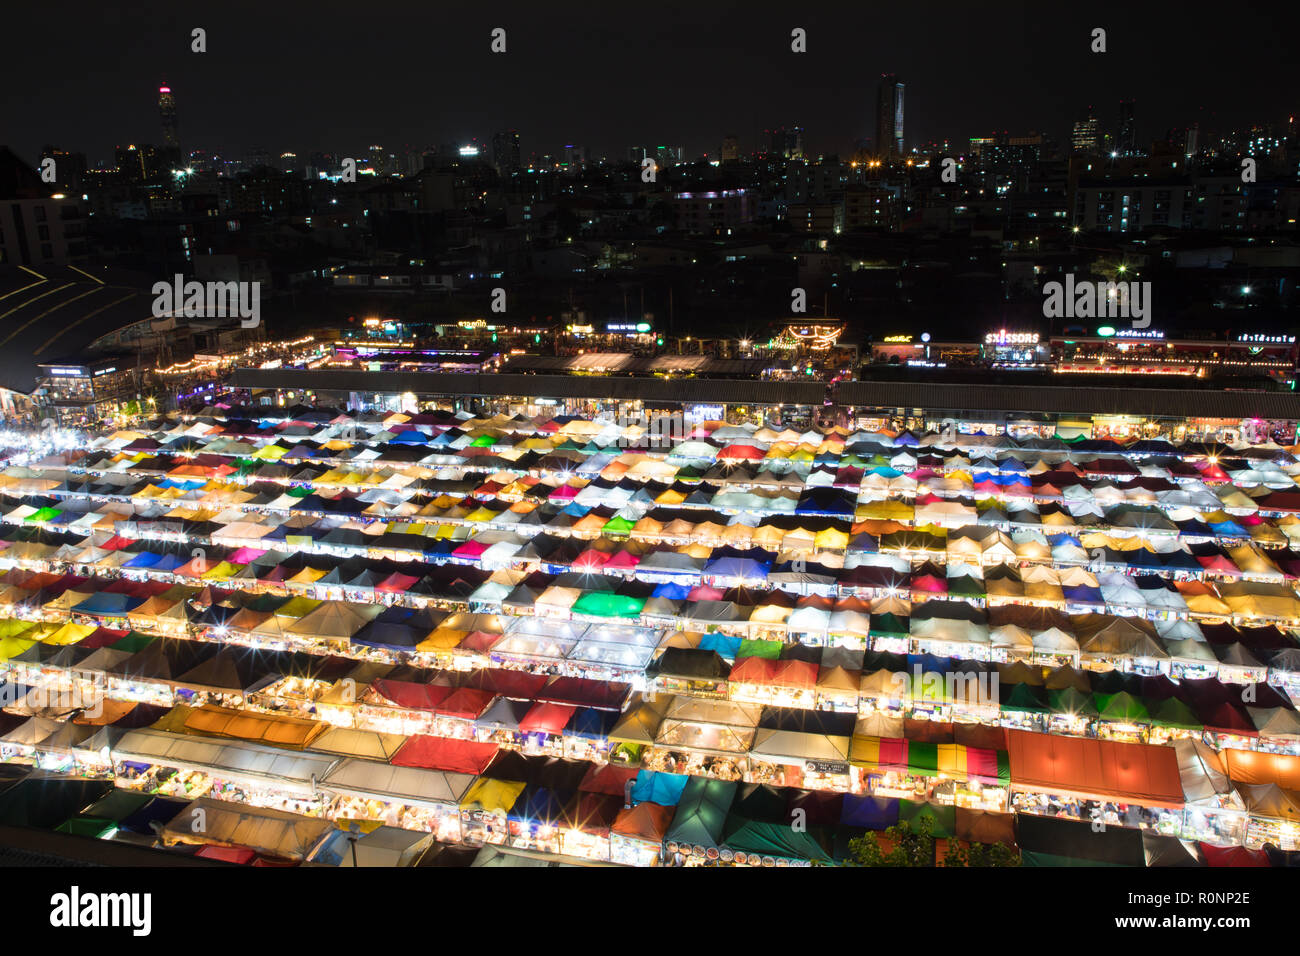 Bangkok nightmarket - Stock Image